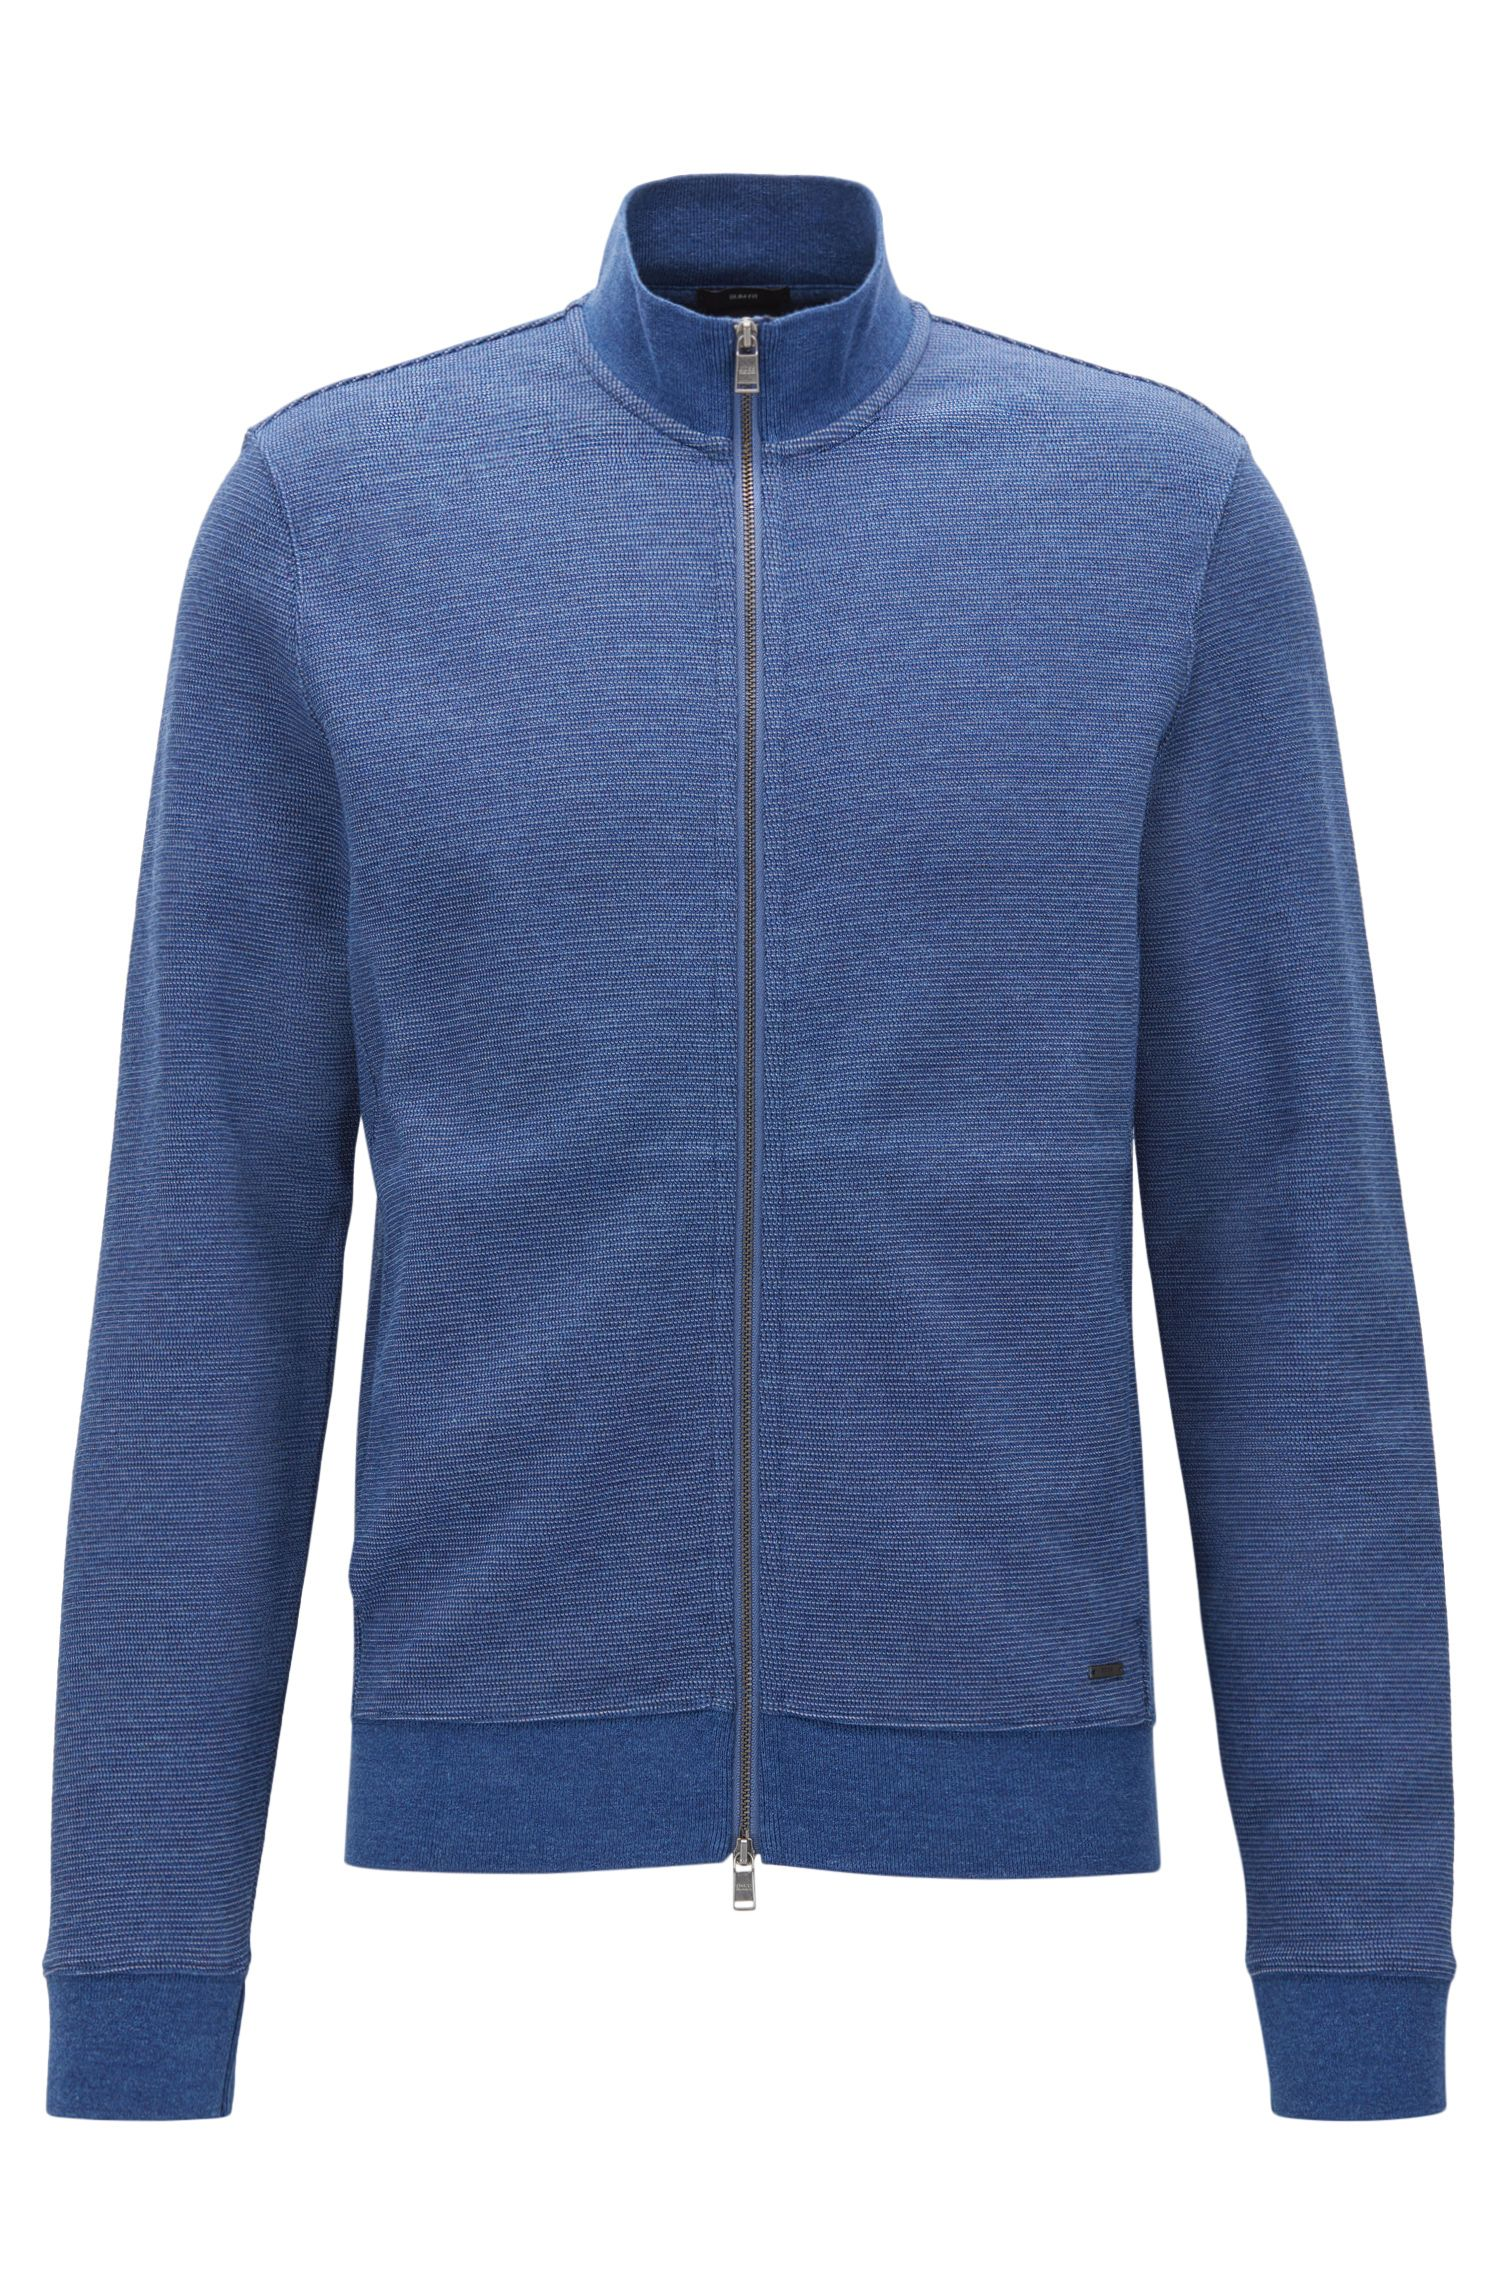 Slim-fit jacket in a two-tone cotton blend